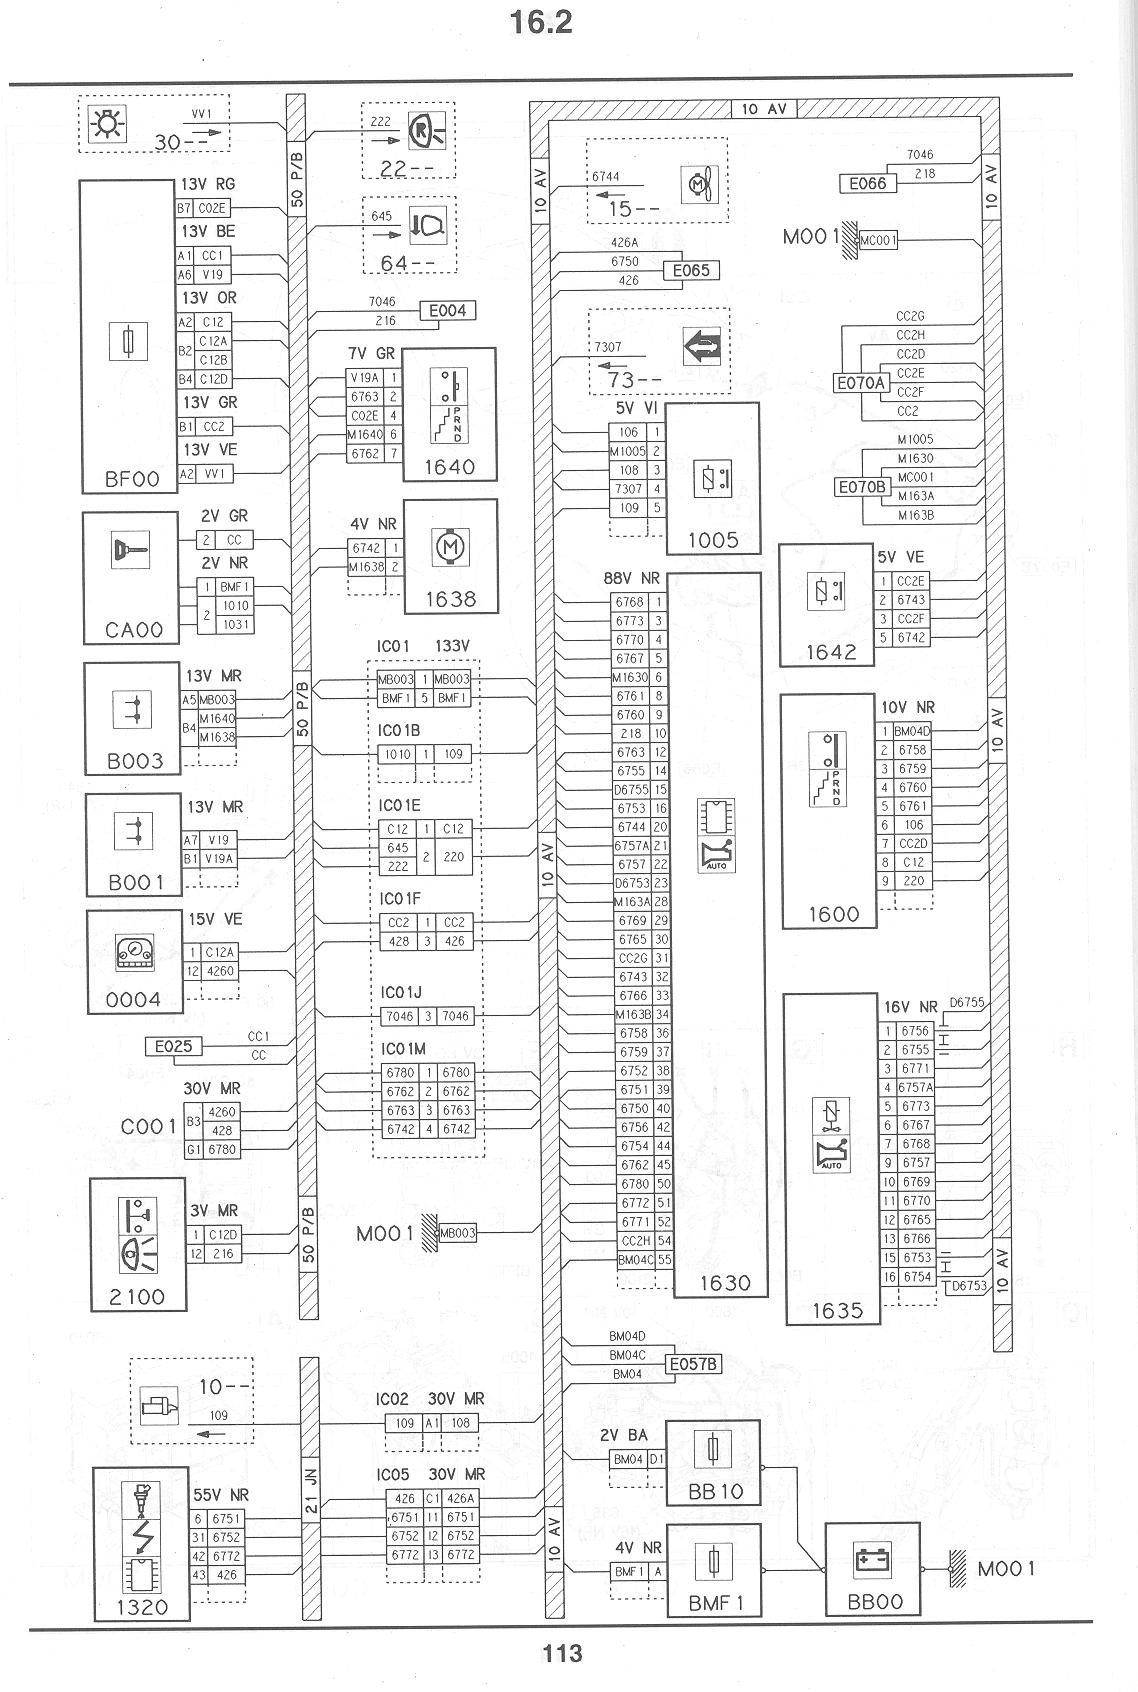 4hp20mk1har engine diagram citroen c3 engine wiring diagrams instruction citroen c3 2010 fuse box location at soozxer.org